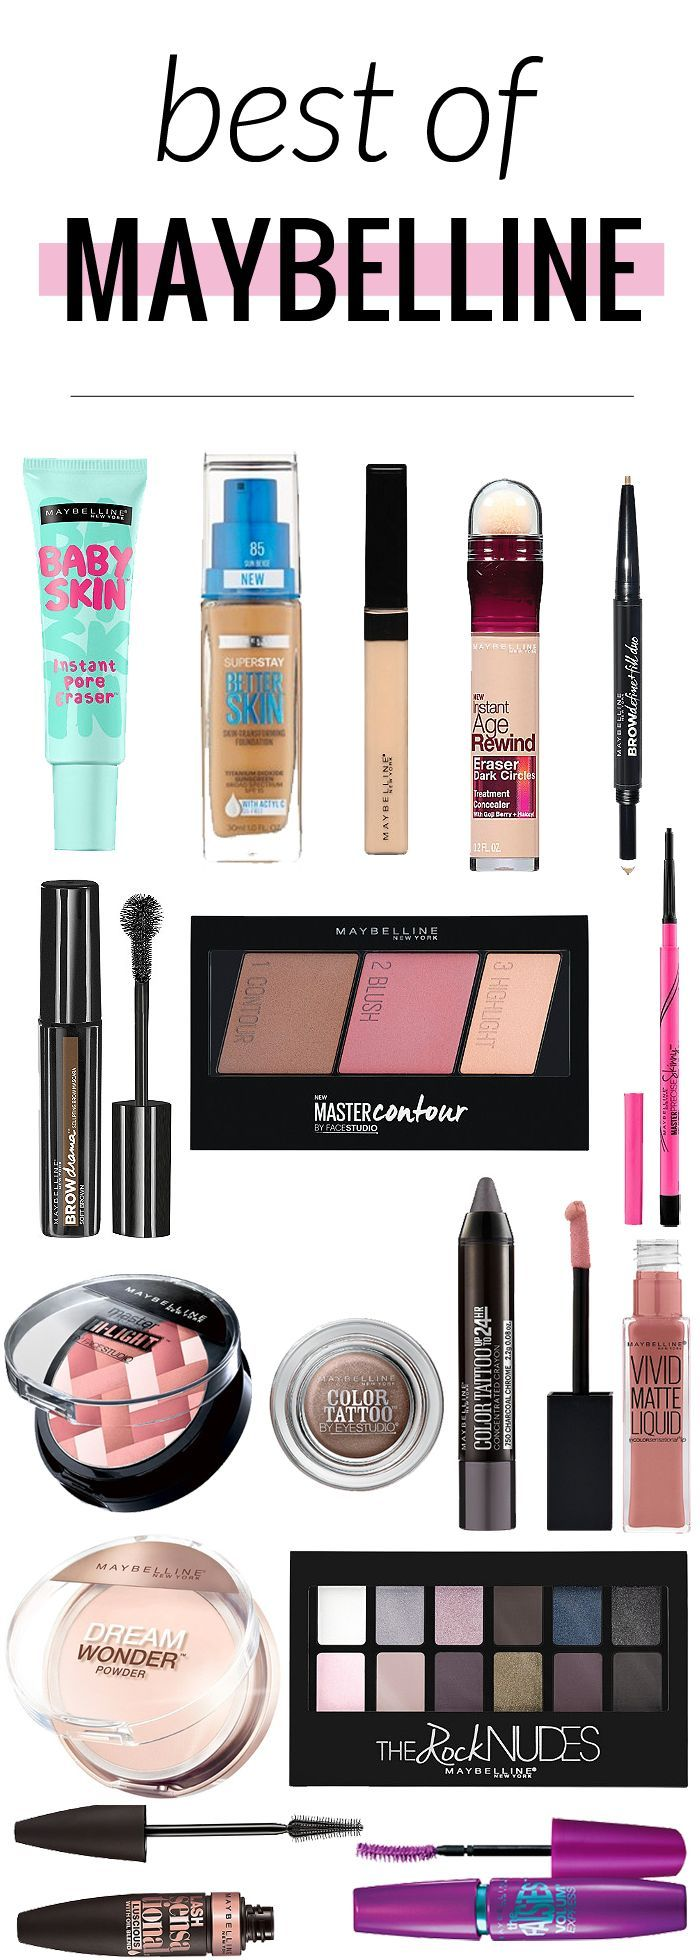 Maybelline Makeup Tutorial Malaysia: 17 Best Images About Budget Makeup On Pinterest